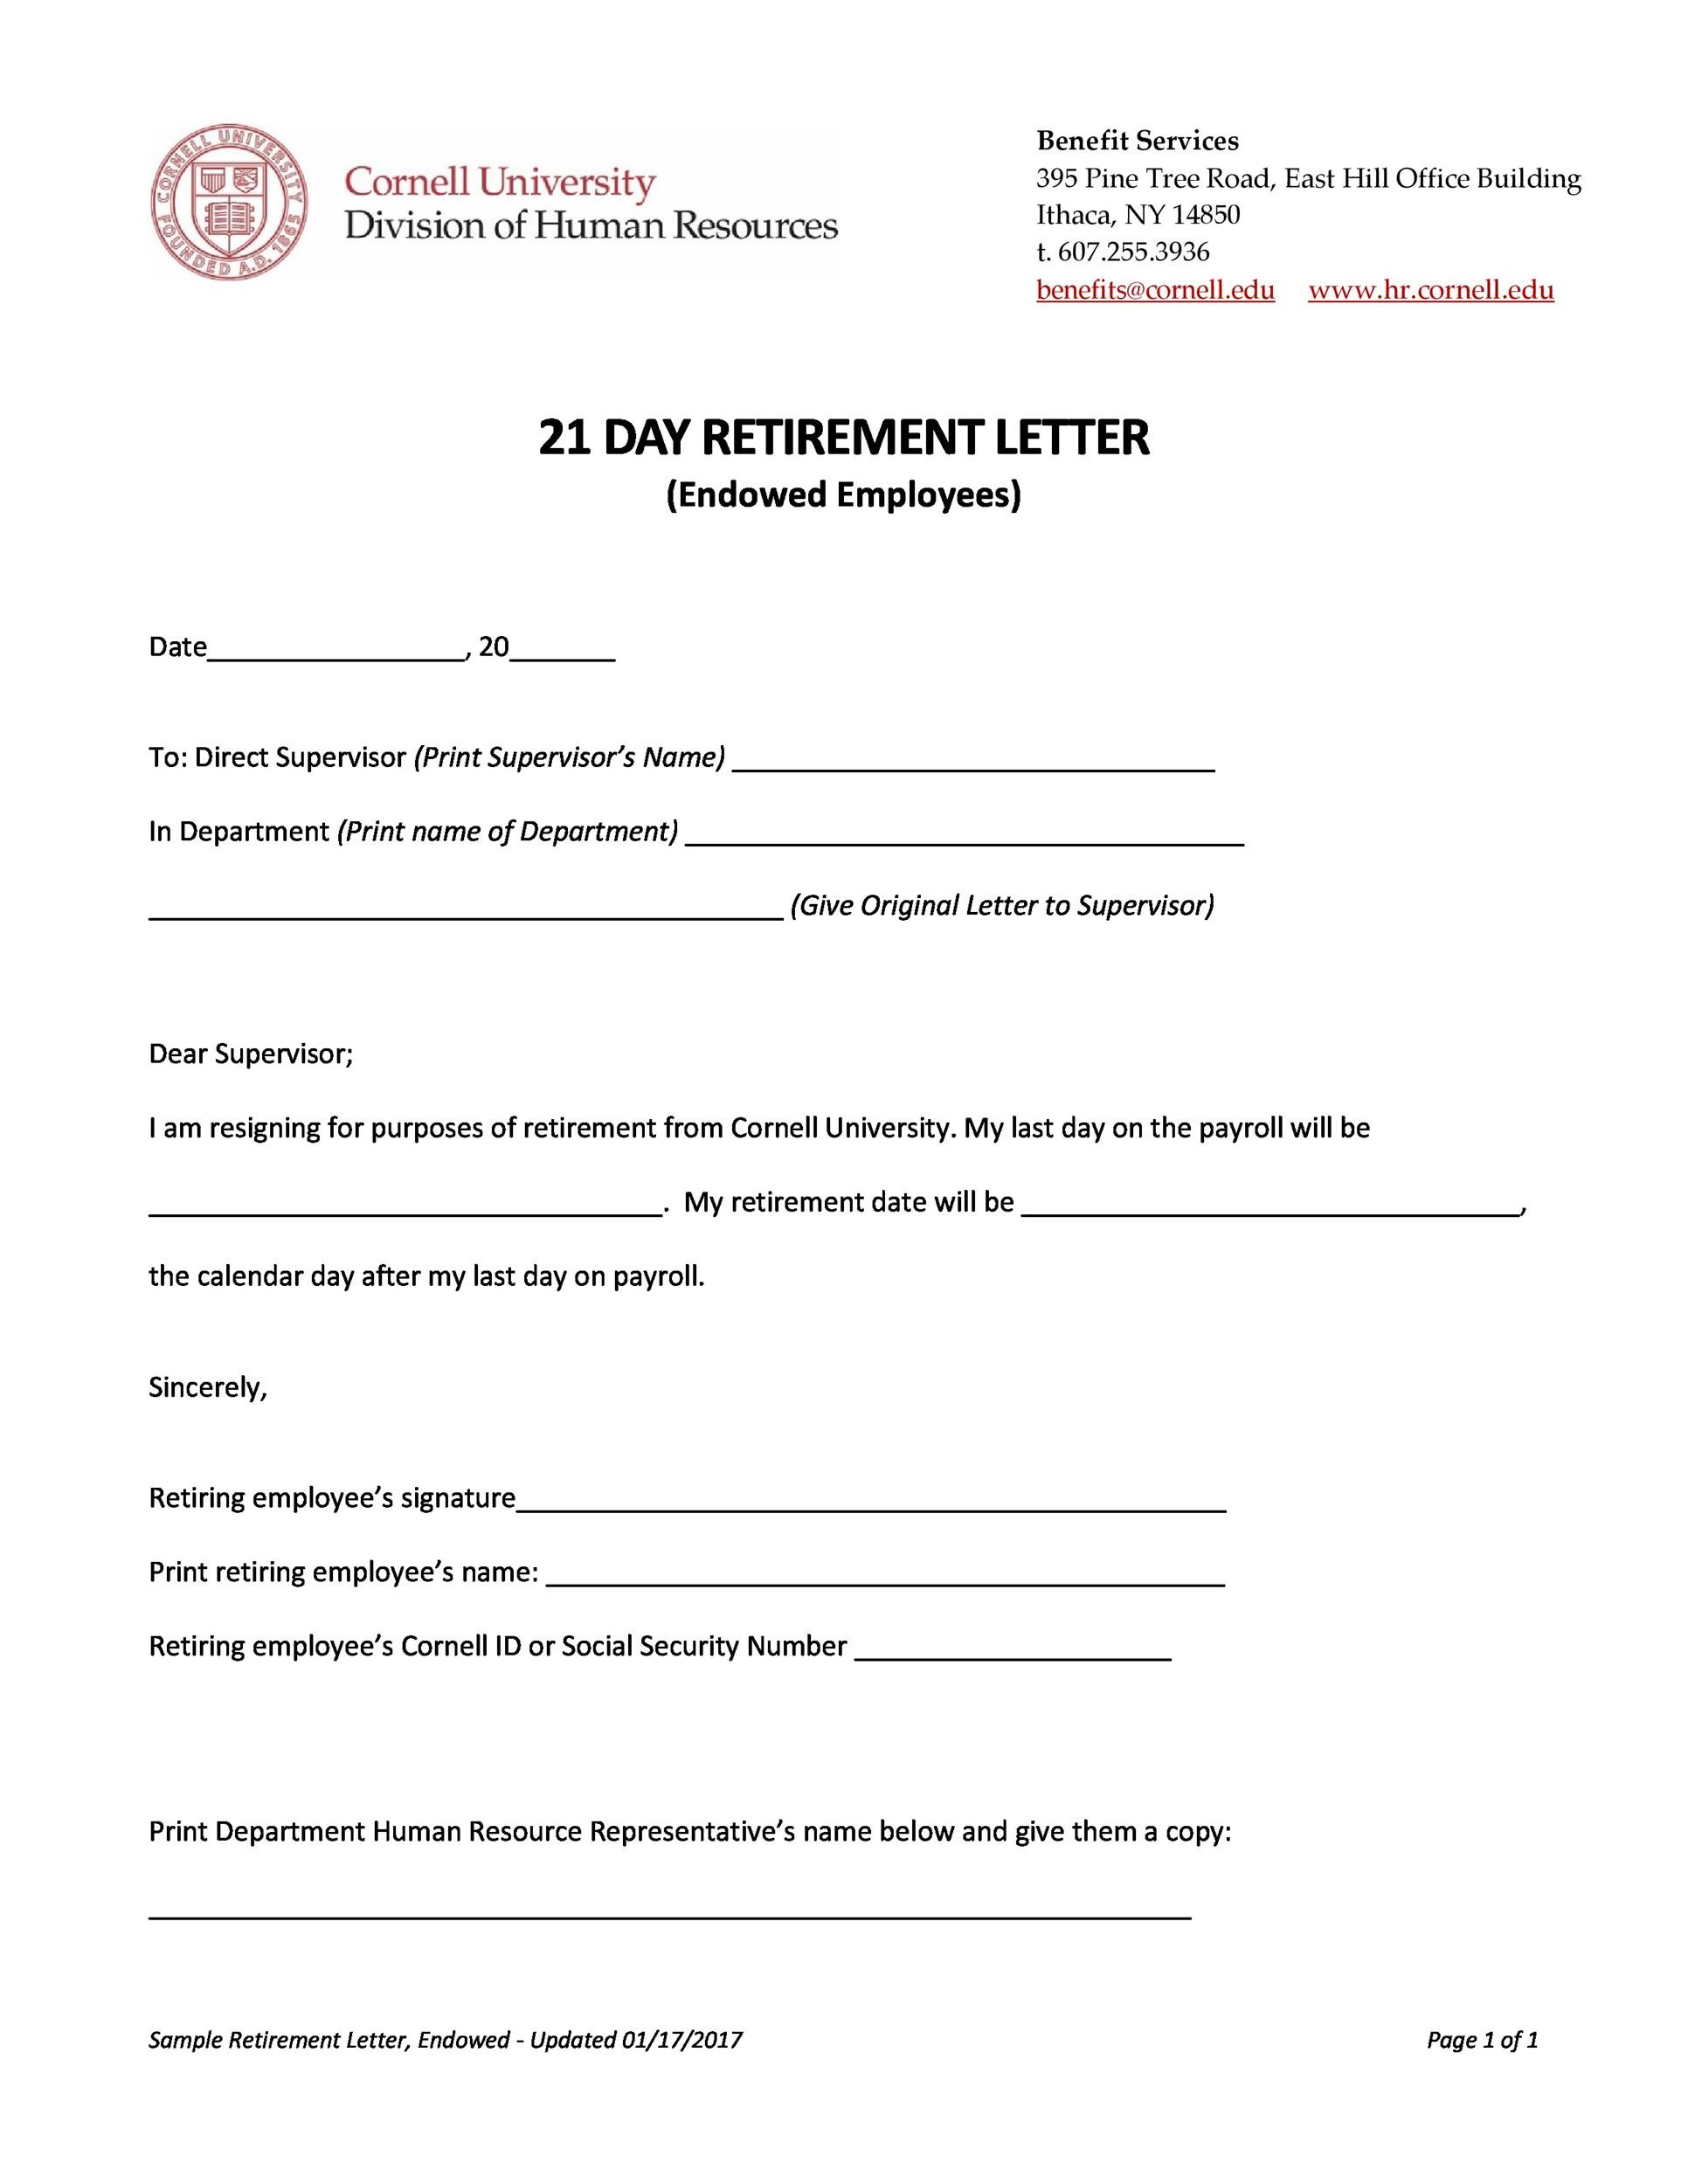 38 Professional Retirement Announcement Letters & Emails ᐅ Template Lab